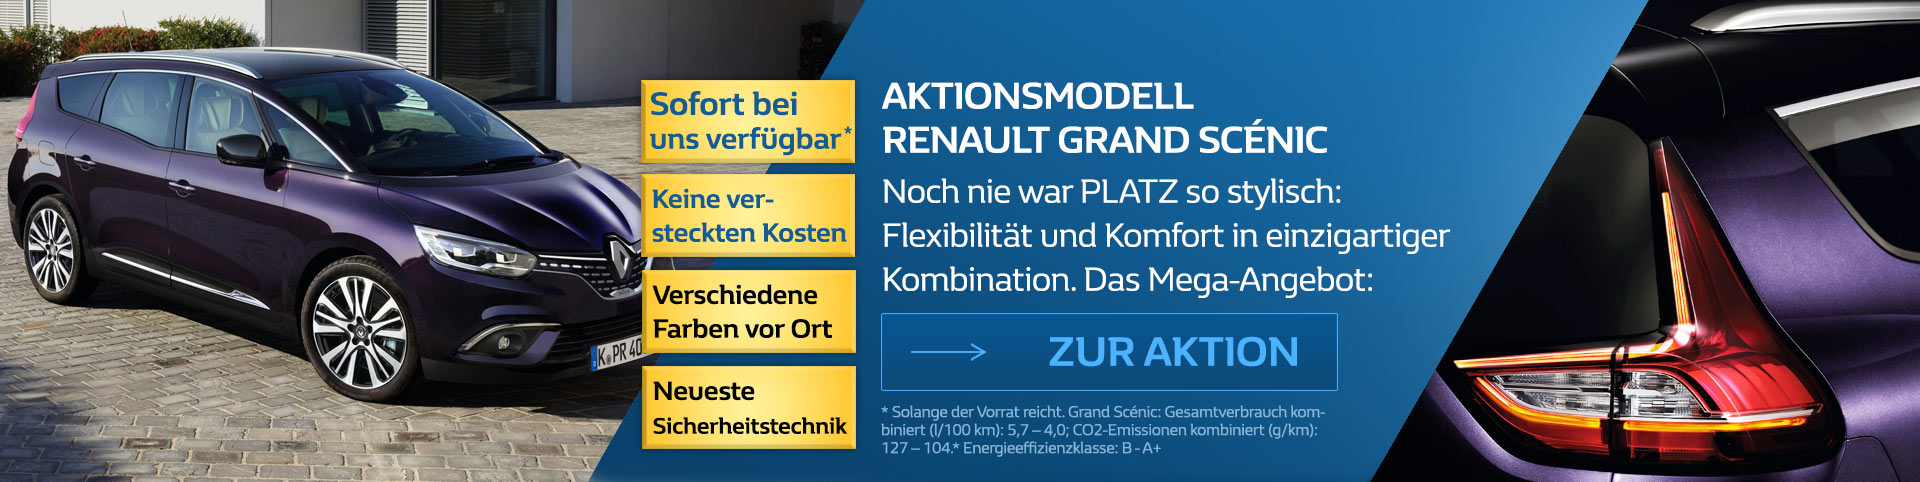 Renault Grand Scenic Angebot 2018